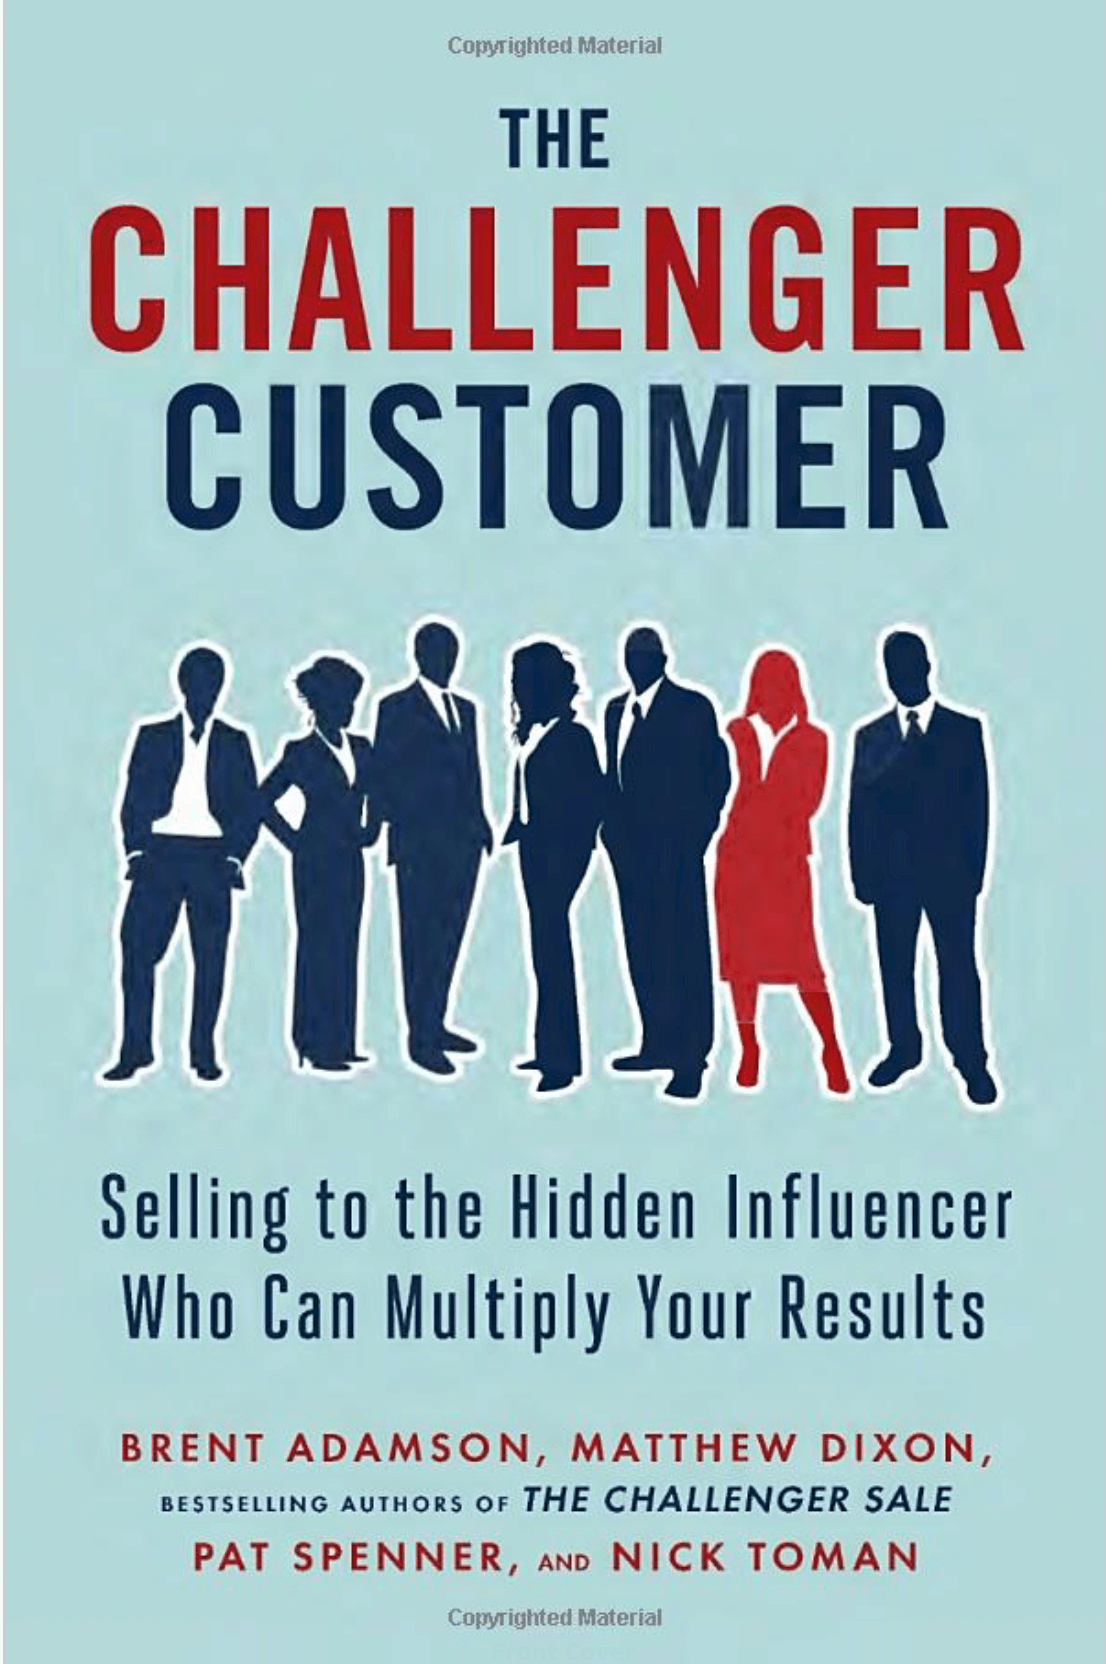 """The Challenger Customer: Selling to the Hidden Influencer Who Can Multiply Your Results"" by Brent Adamson, Matthew Dixon, Pat Spenner, and Nick Toman_Saleslabel.com"